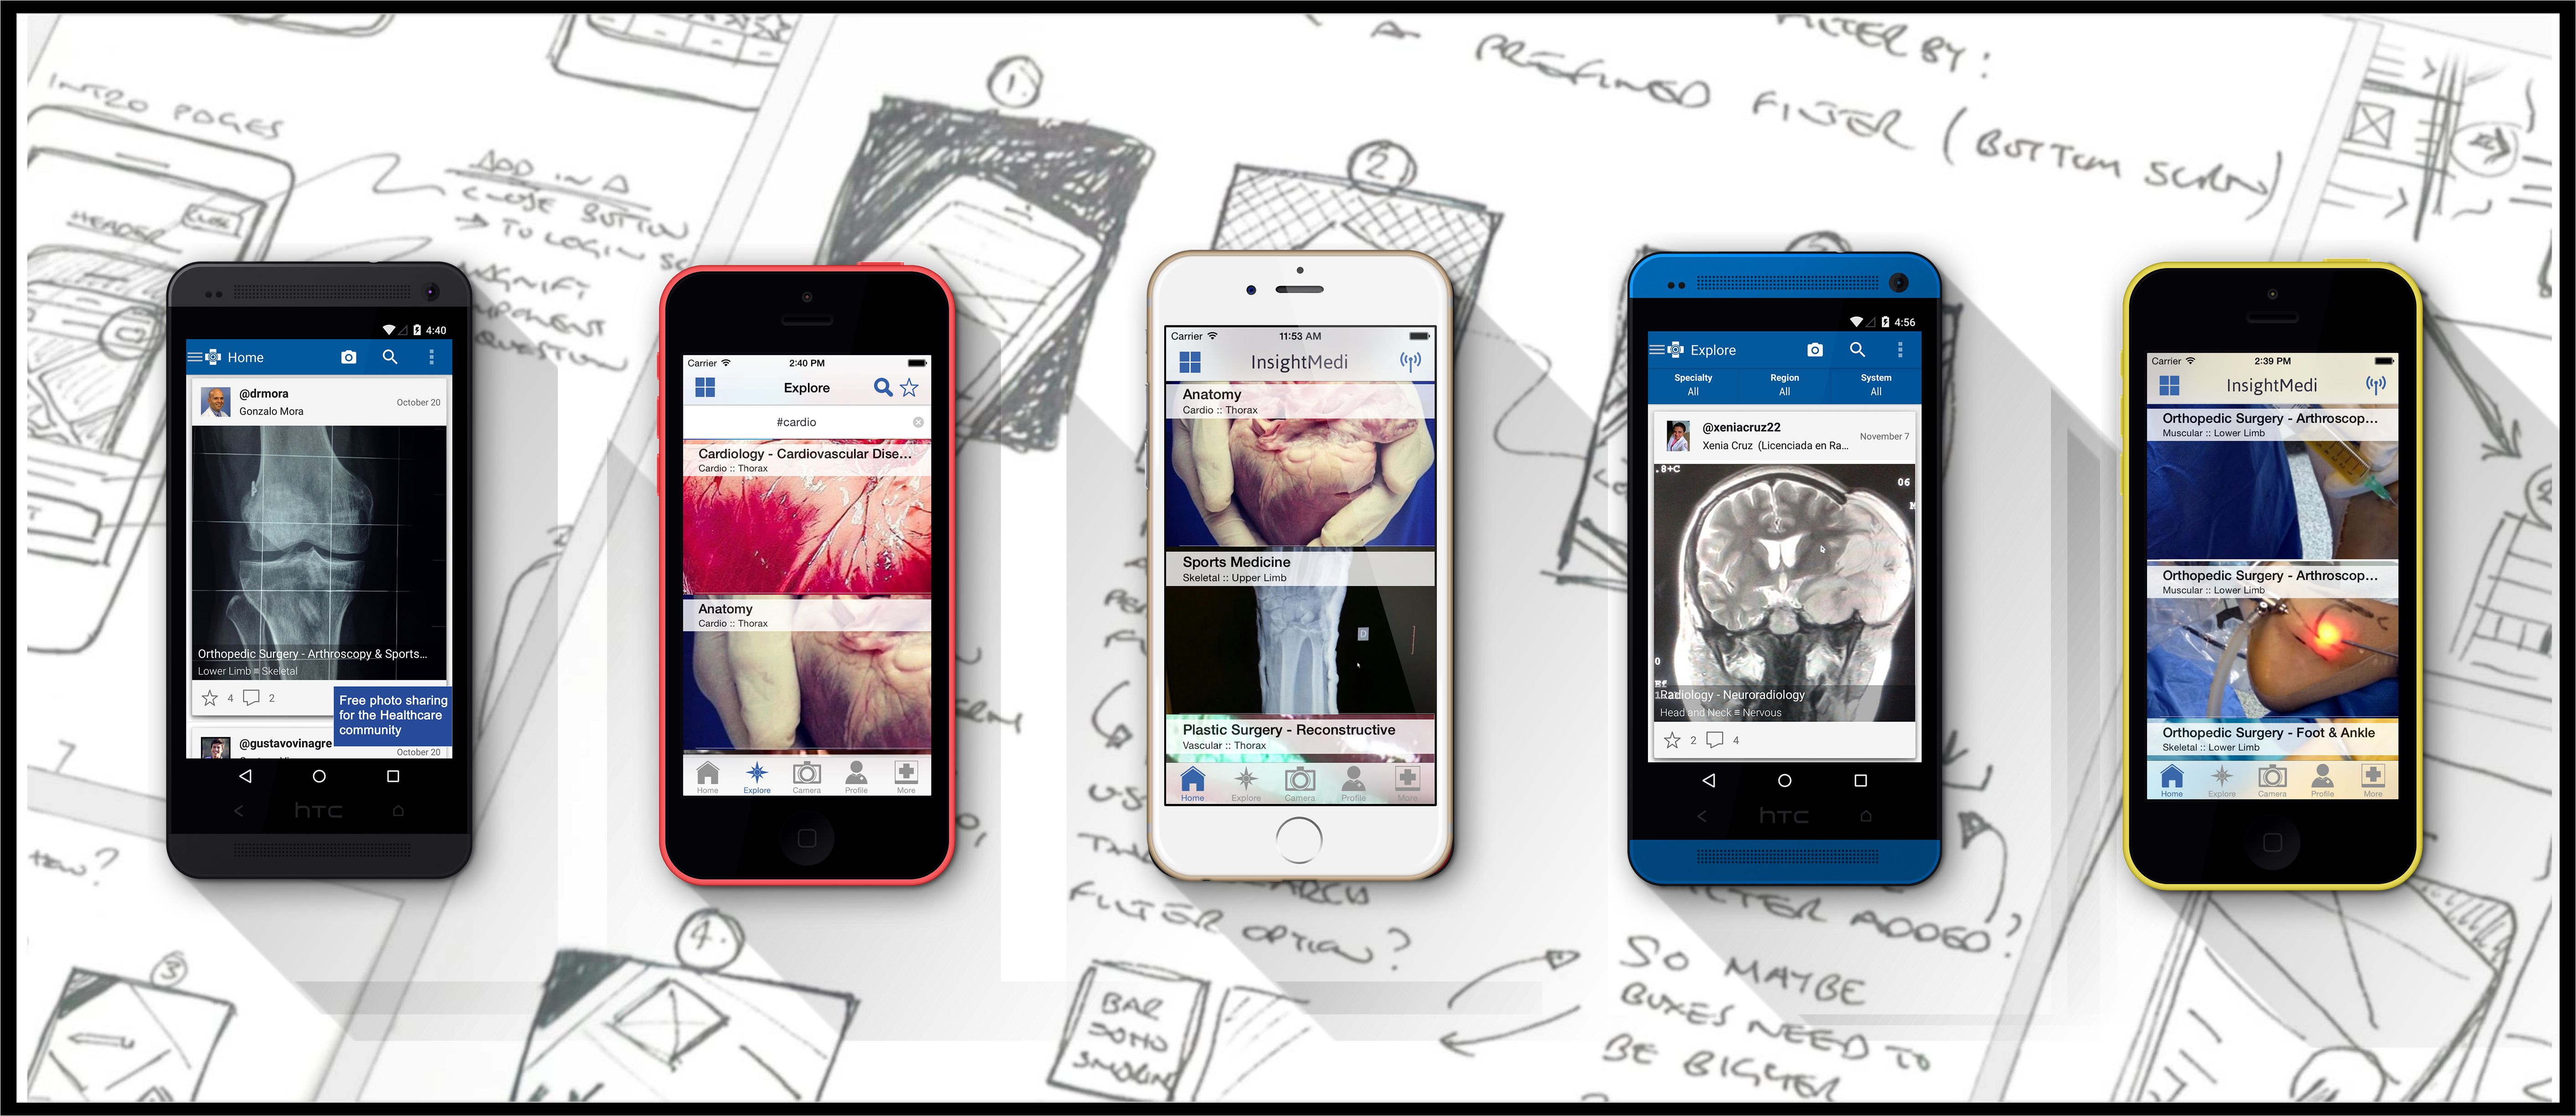 The professional image-sharing network for healthcare providers